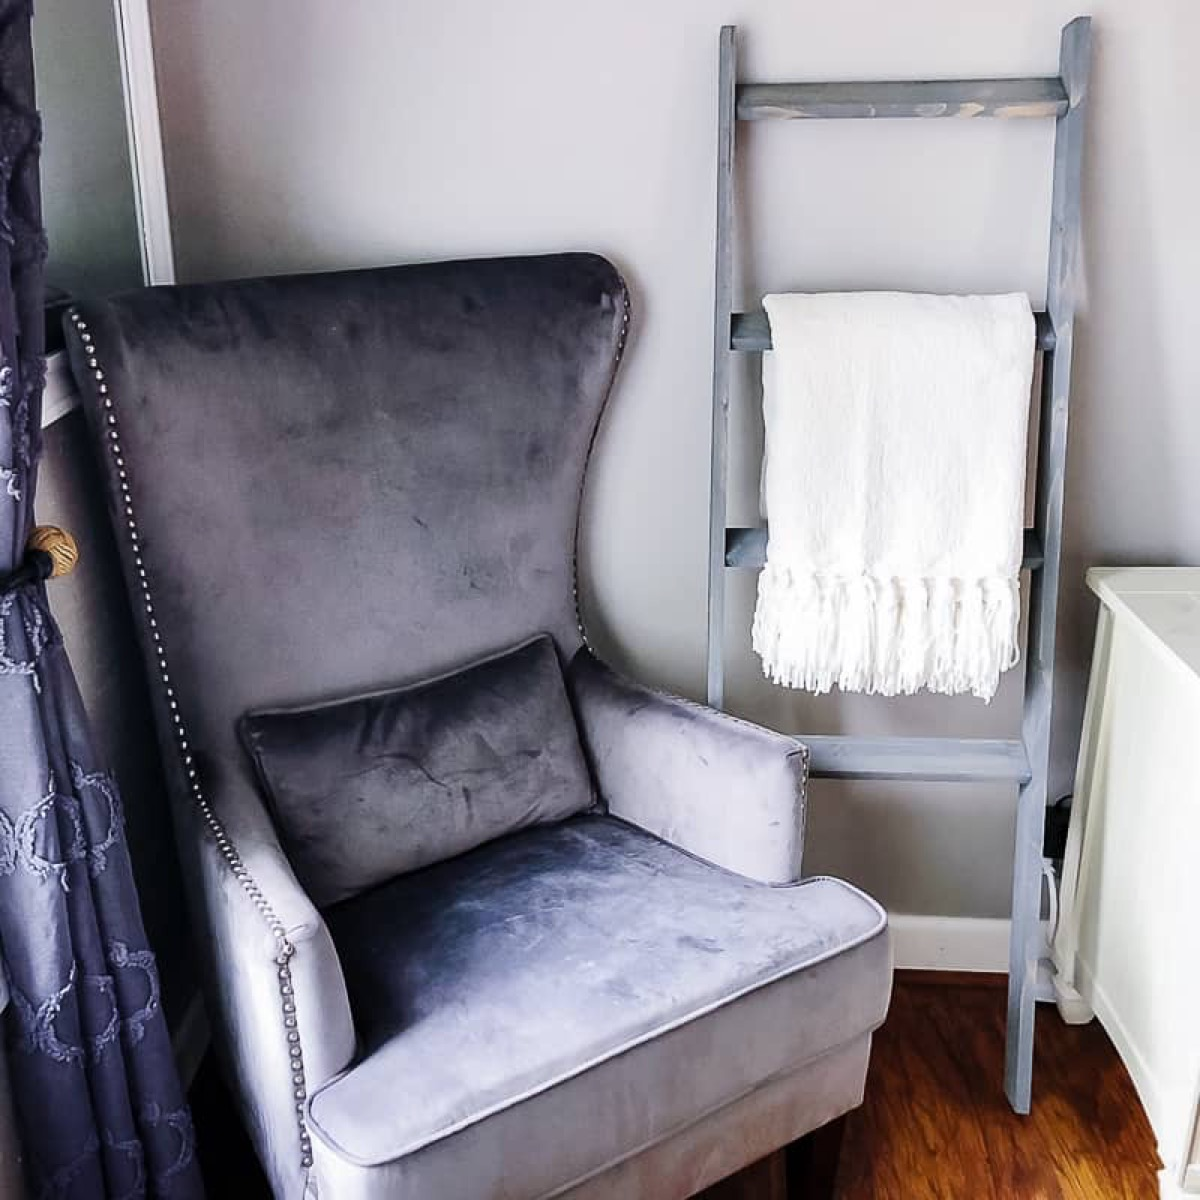 gray chair next to ladder with blanket on it